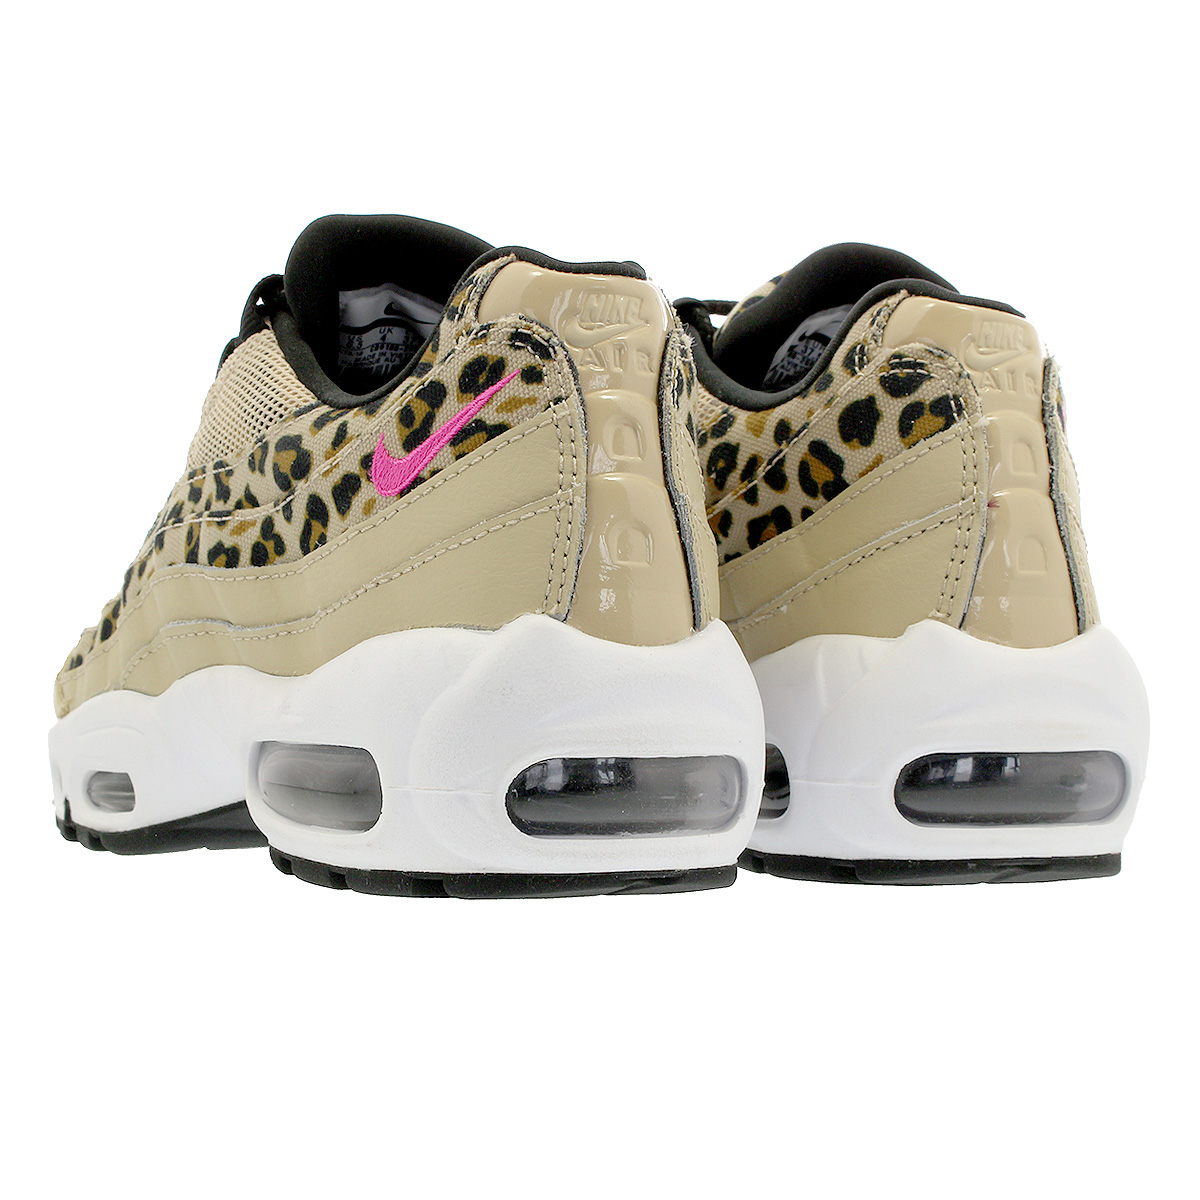 new concept 9f6e4 42000 NIKE WMNS AIR MAX 95 PRM Nike women Air Max 95 premium DESERT ORE LASER  FUCHSIA BLACK WHEAT cd0180-200